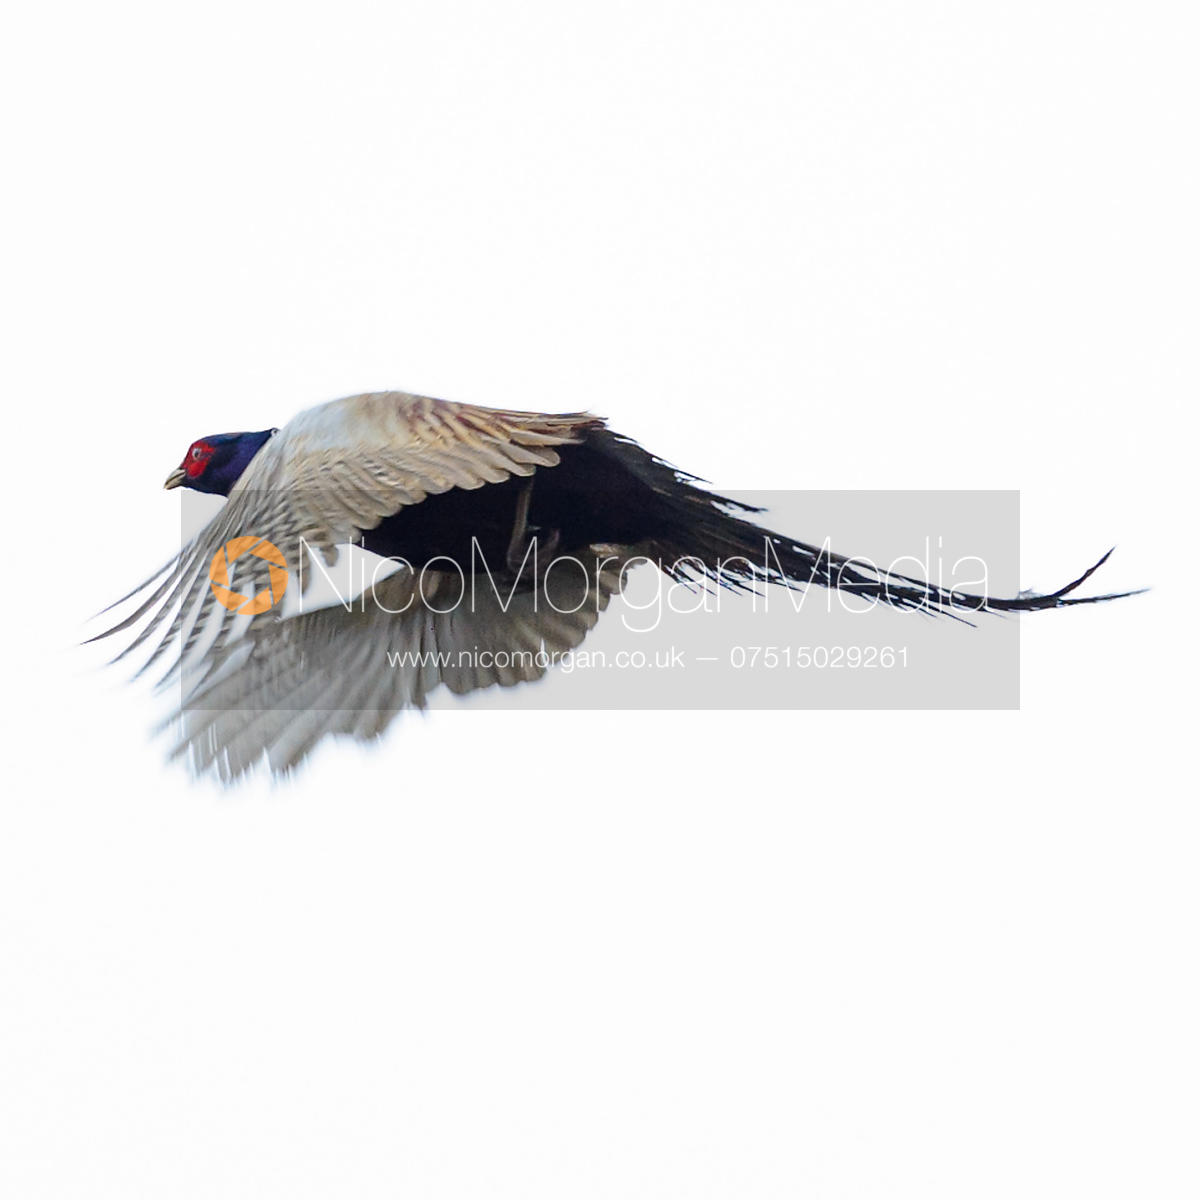 Game shooting images - cock pheasant in flight